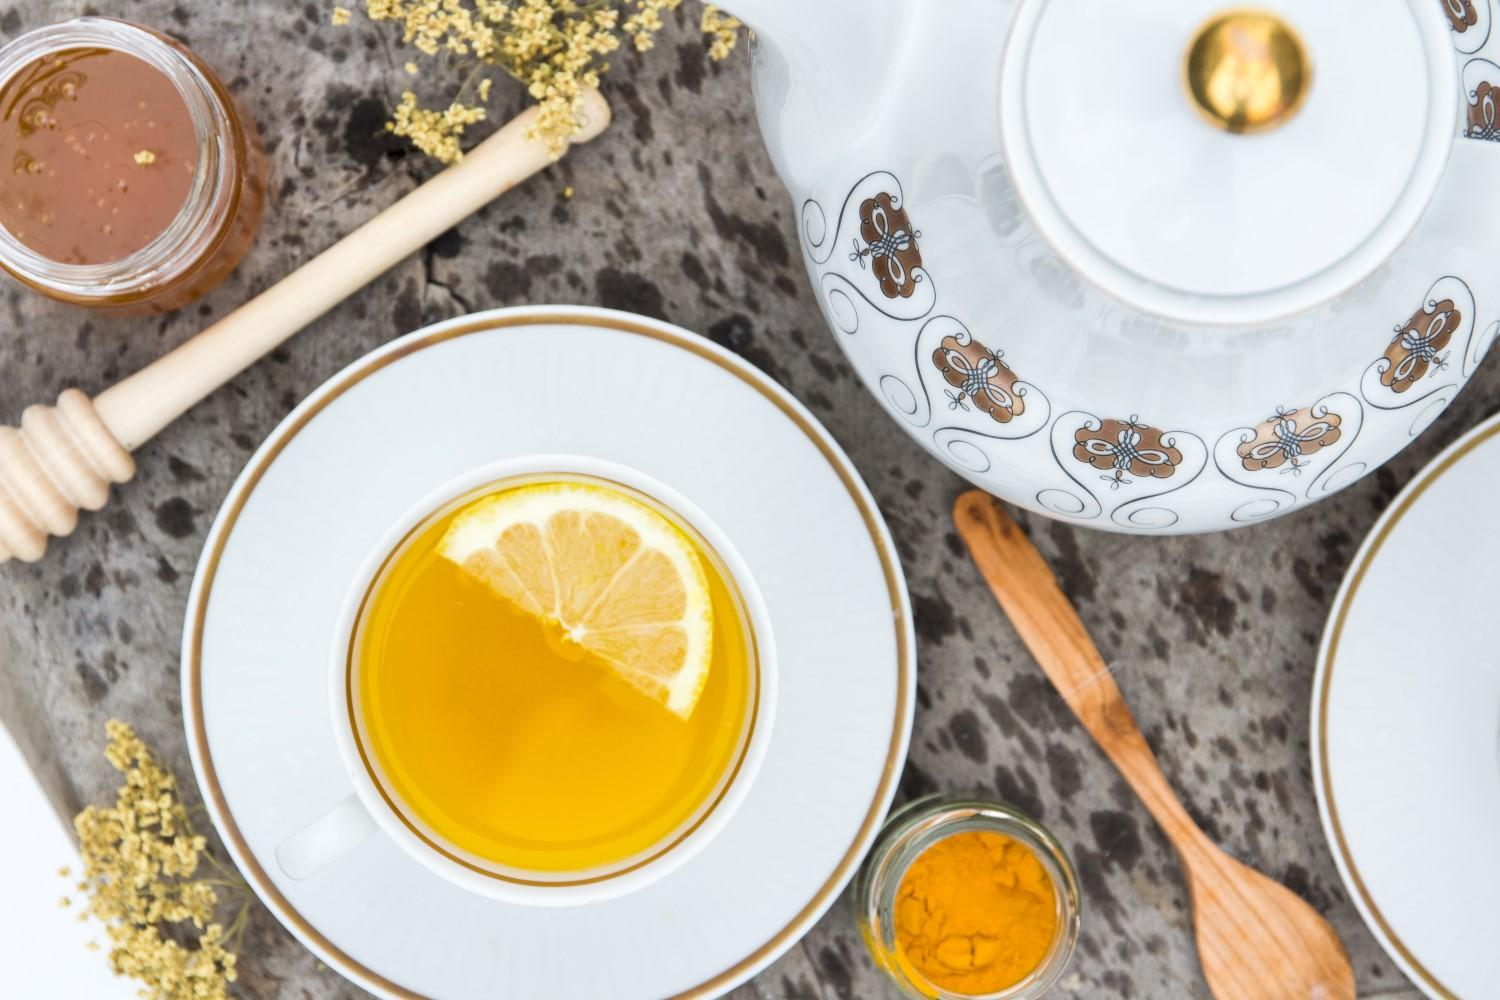 Use Your Noodles - Immune-Boosting Elderflower Turmeric Tea